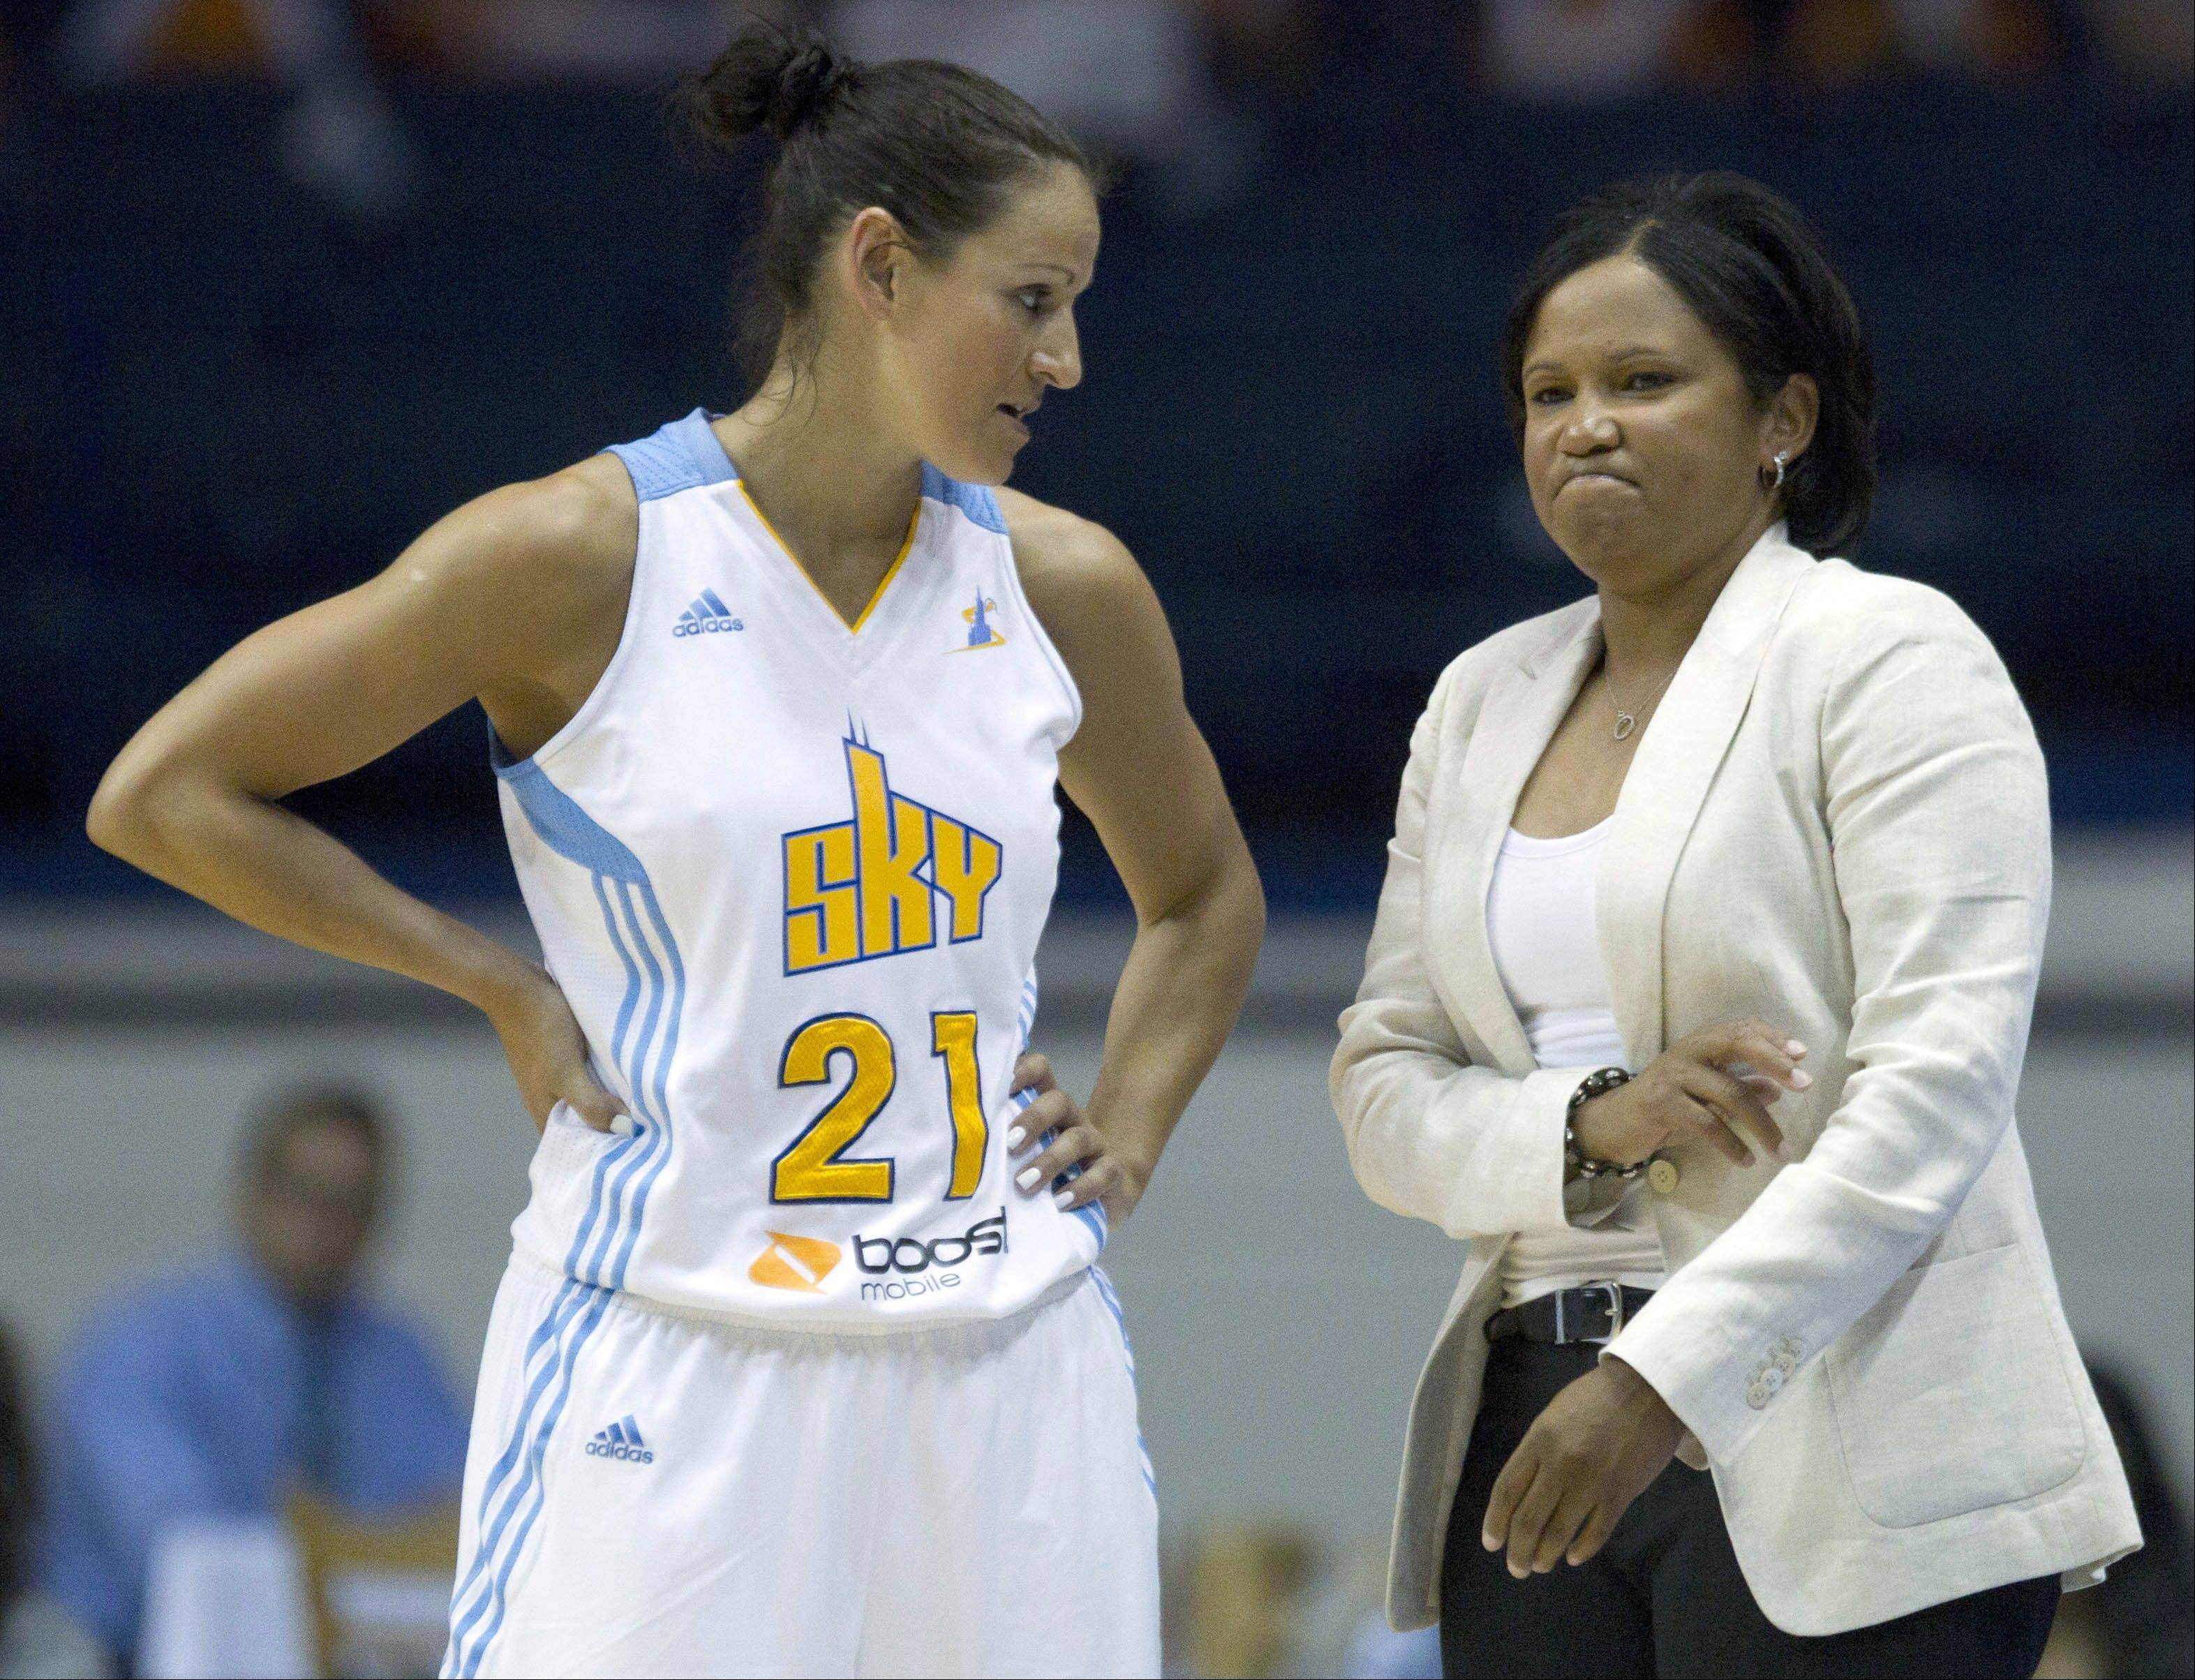 Chicago Sky's Ticha Penicheiro (21) will retire at the end of the season as the WNBA's all-time assists leader and ranked No. 2 in steals. Sky coach Pokey Chatman says Penicheiro's knowledge and passion for the game are as important as the records she set.